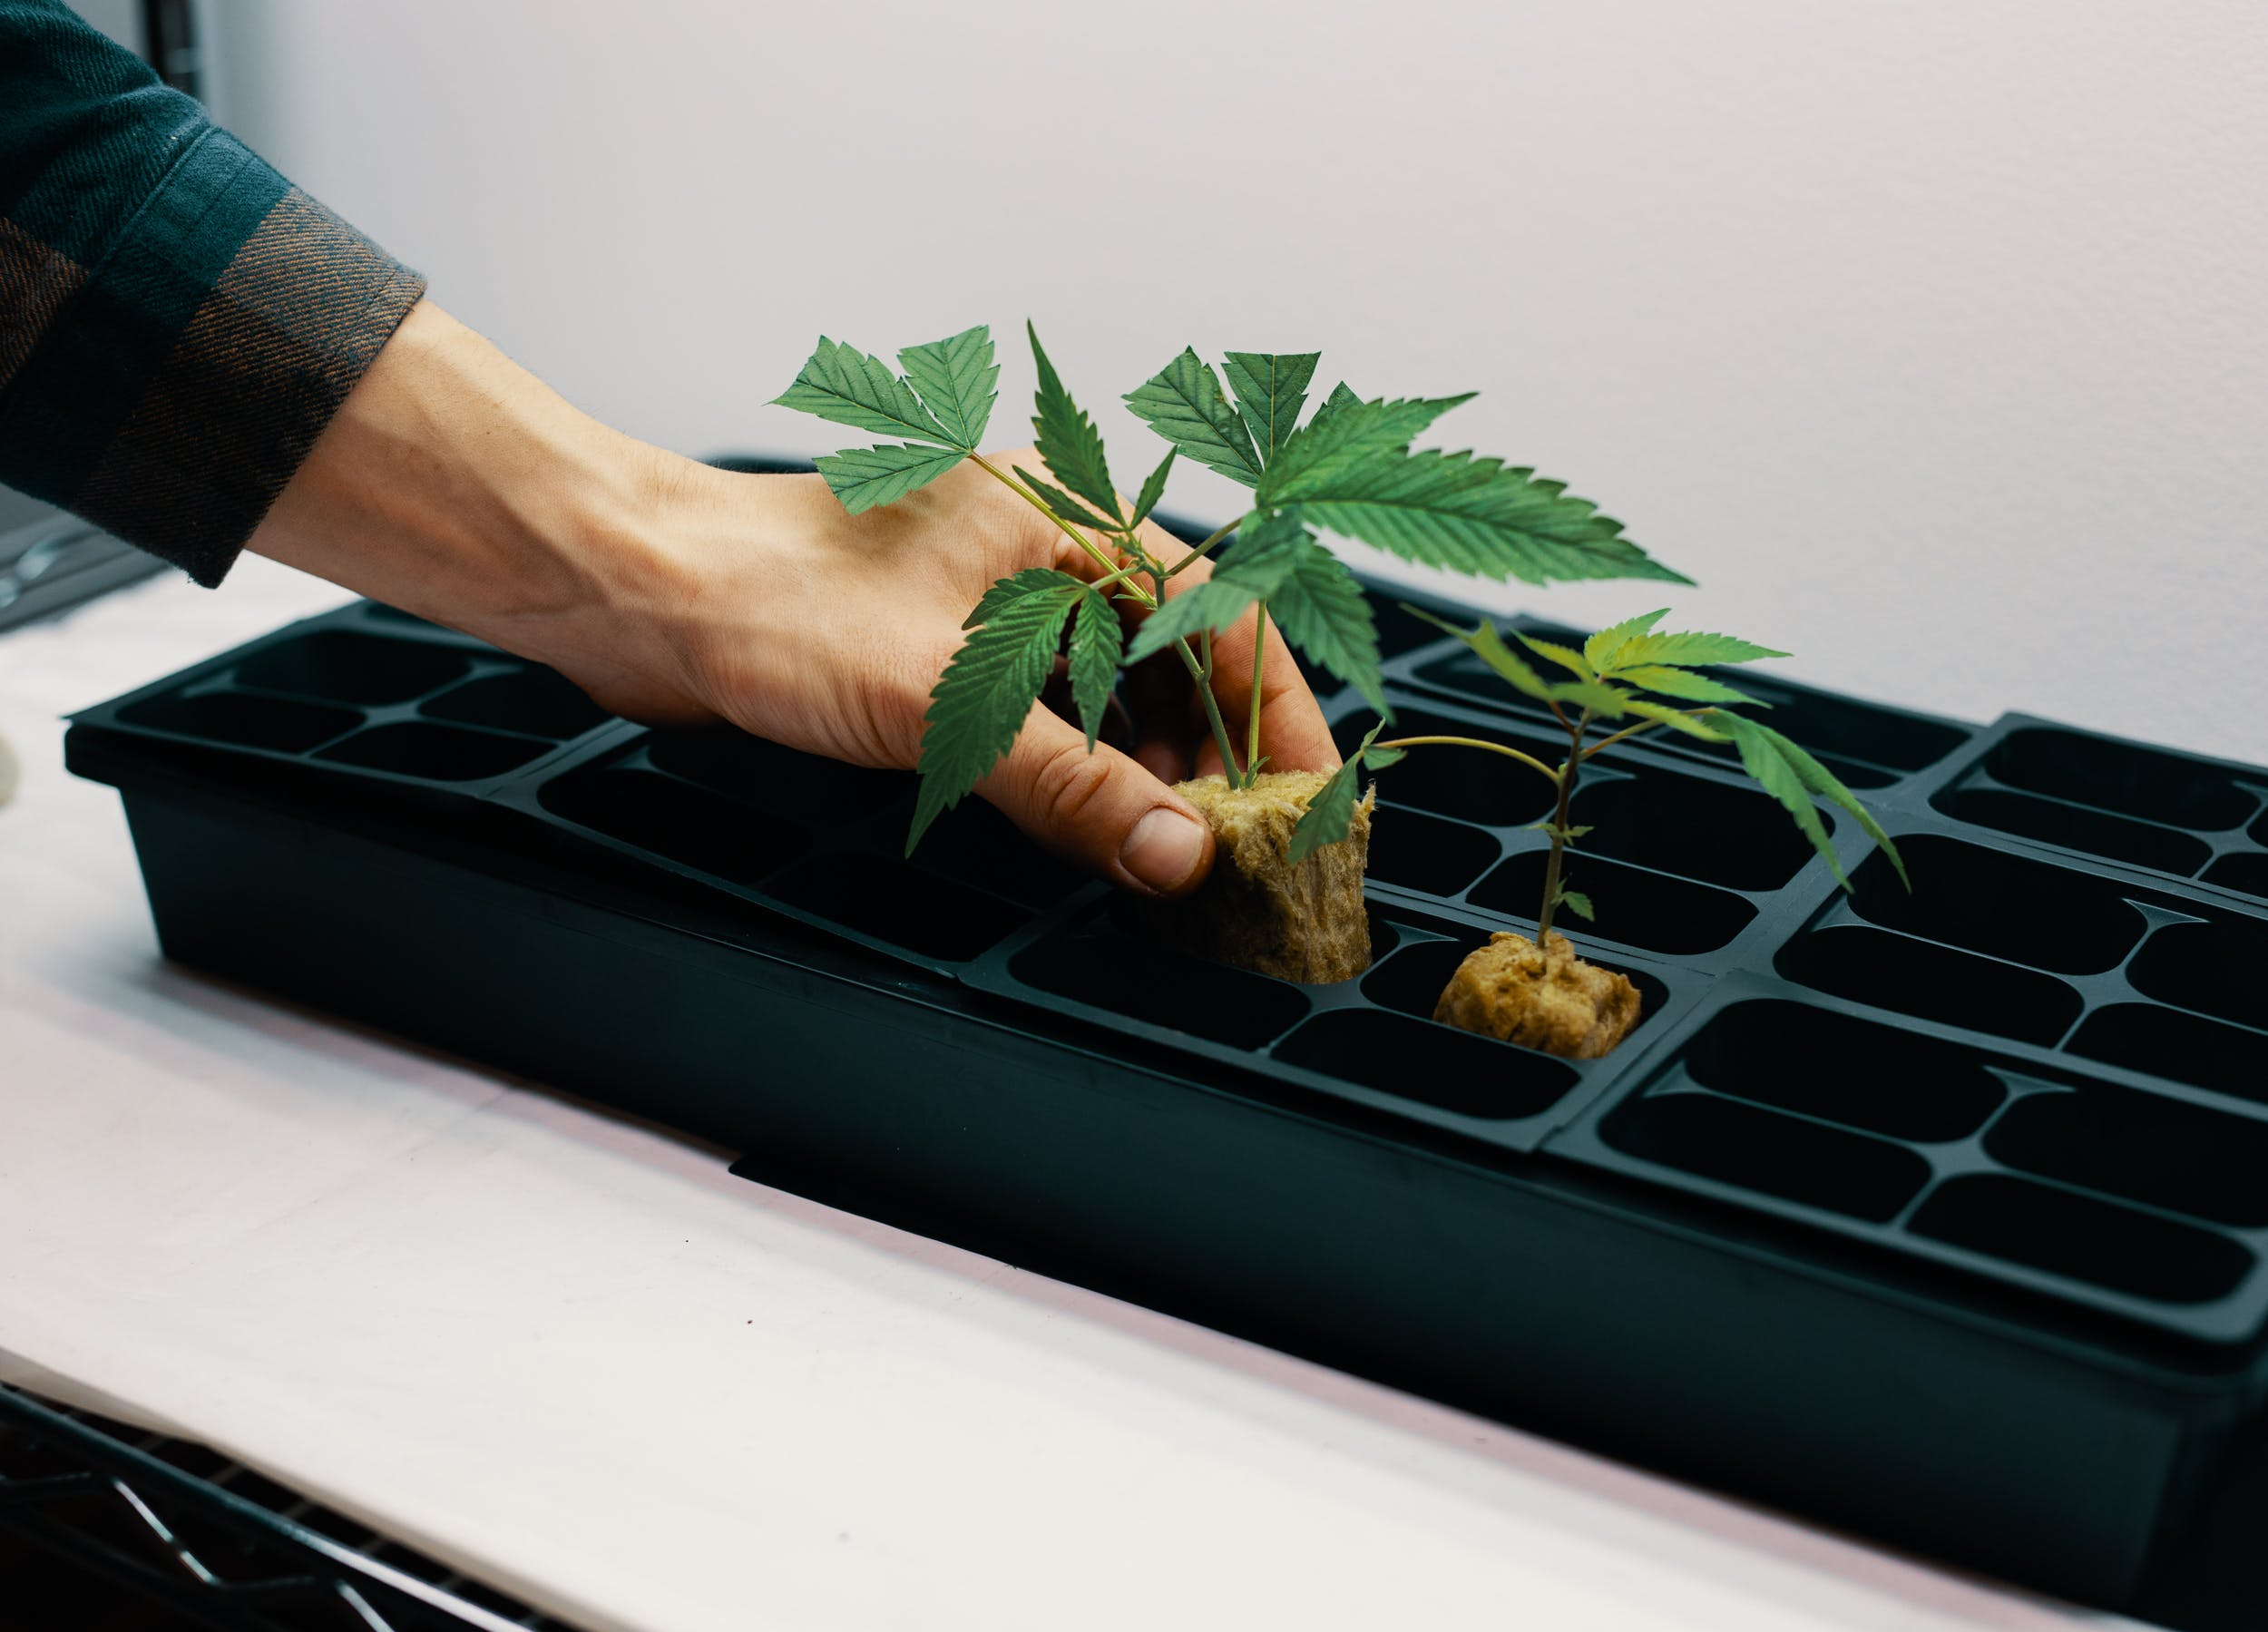 Cloned plants being placed into sprouting boxes, a key step in understanding how to clone weed